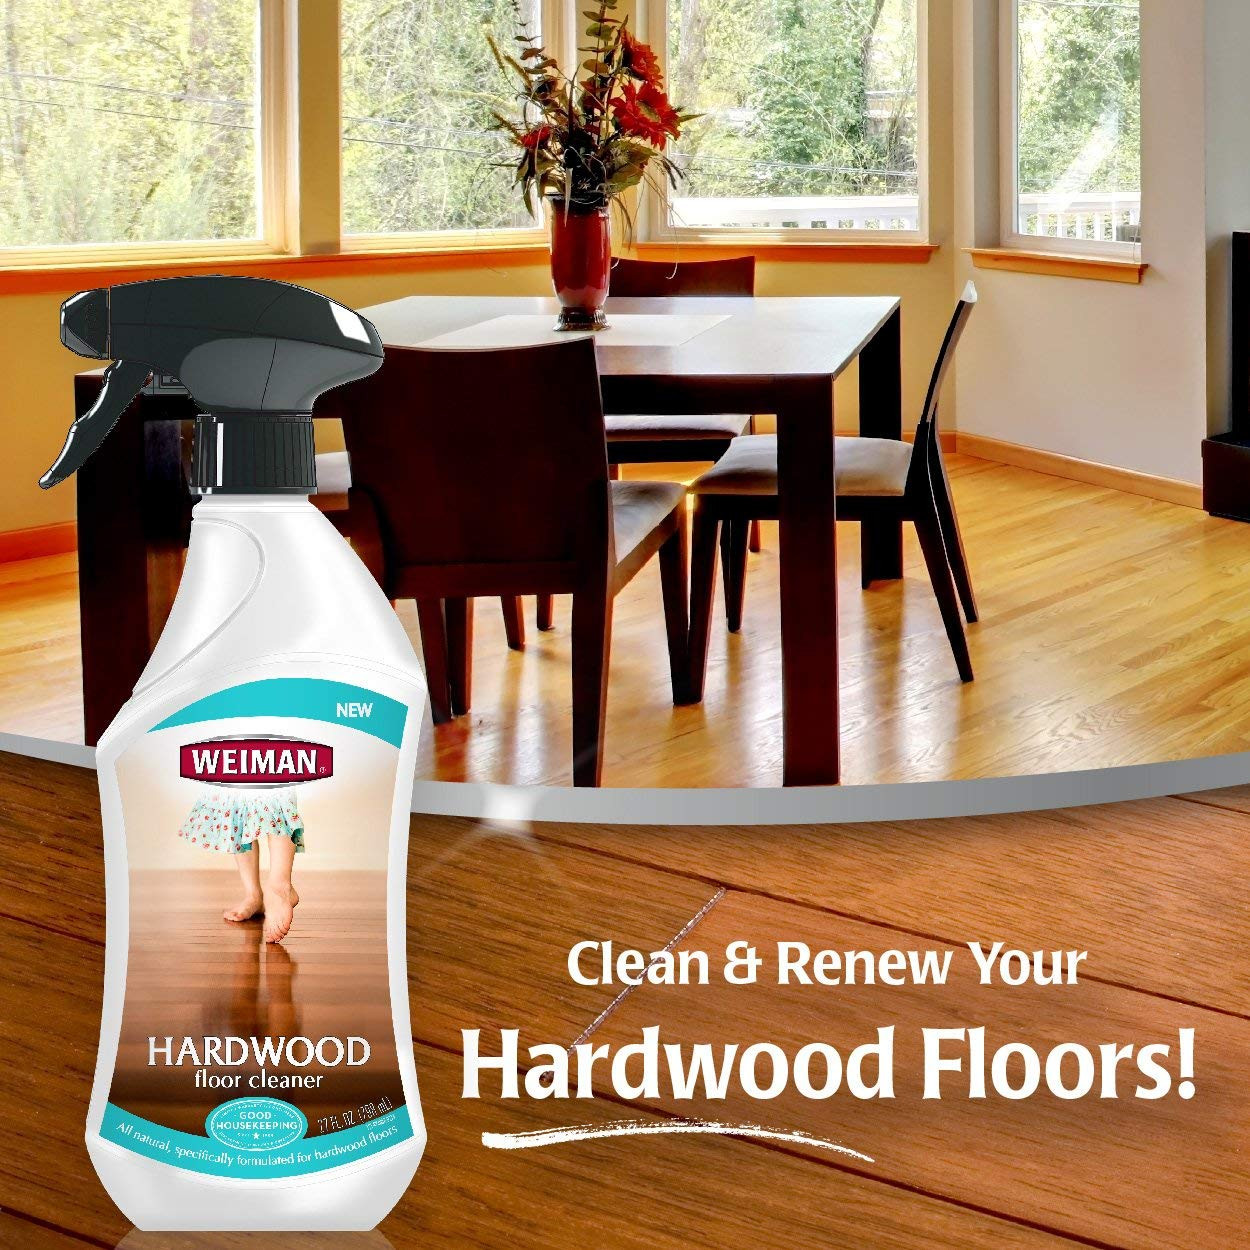 bona hardwood floor cleaner refill 96 fl oz of amazon com weiman hardwood floor cleaner surface safe no harsh throughout amazon com weiman hardwood floor cleaner surface safe no harsh scent safe for use around kids and pets residue free 27 oz trigger home kitchen